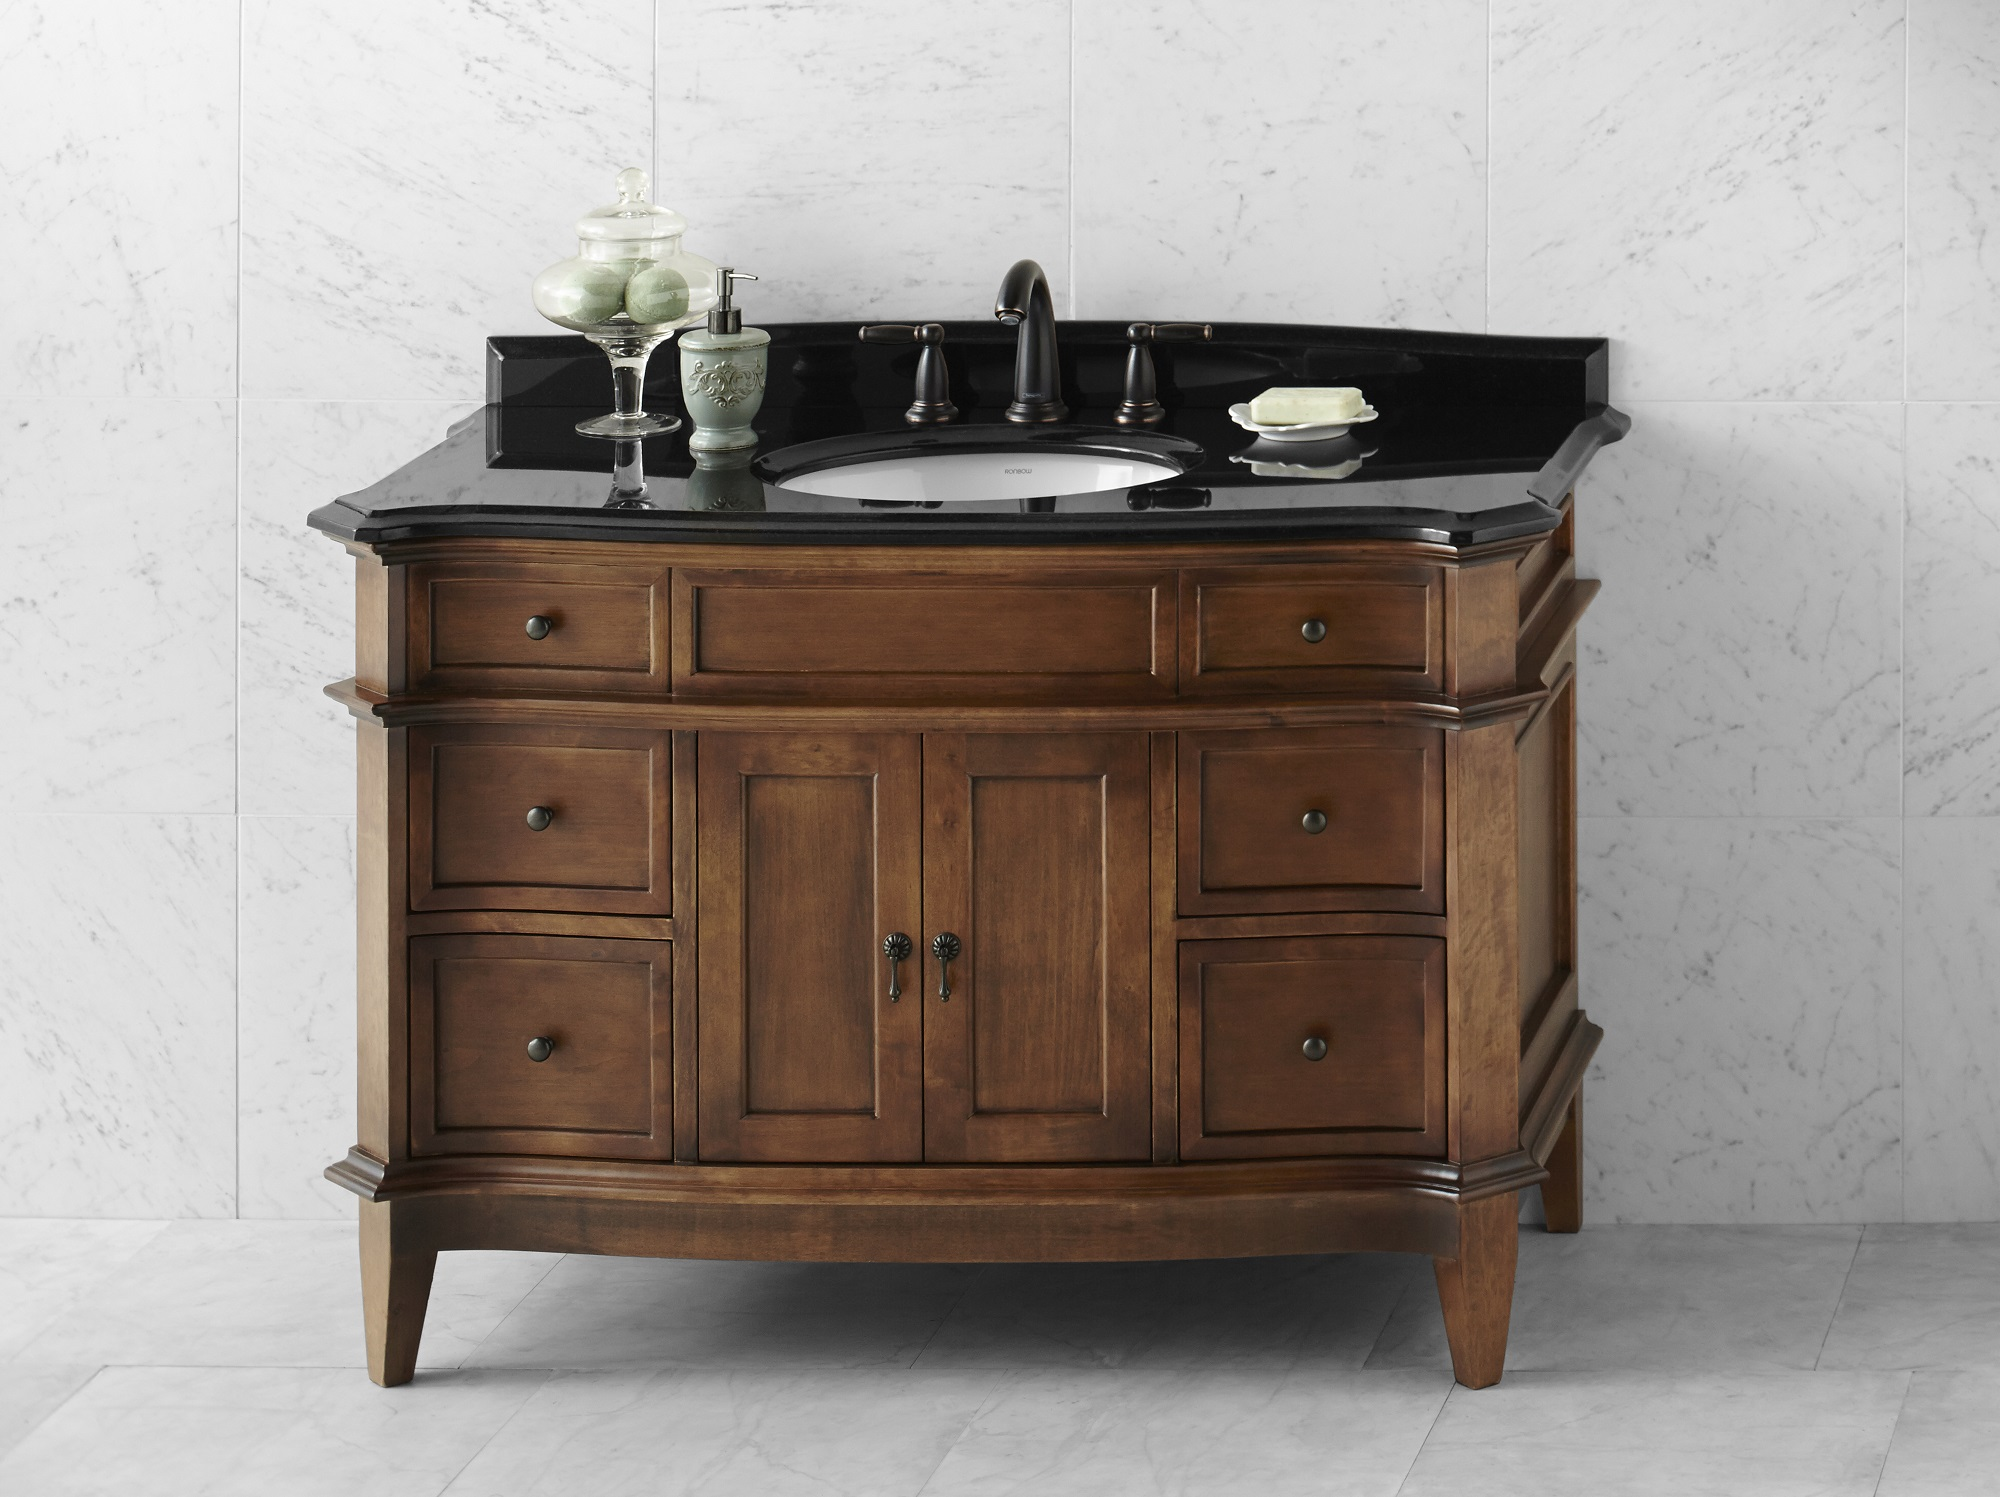 "Ronbow Solerno 48"" Bathroom Vanity Cabinet Base in Caf? Walnut"